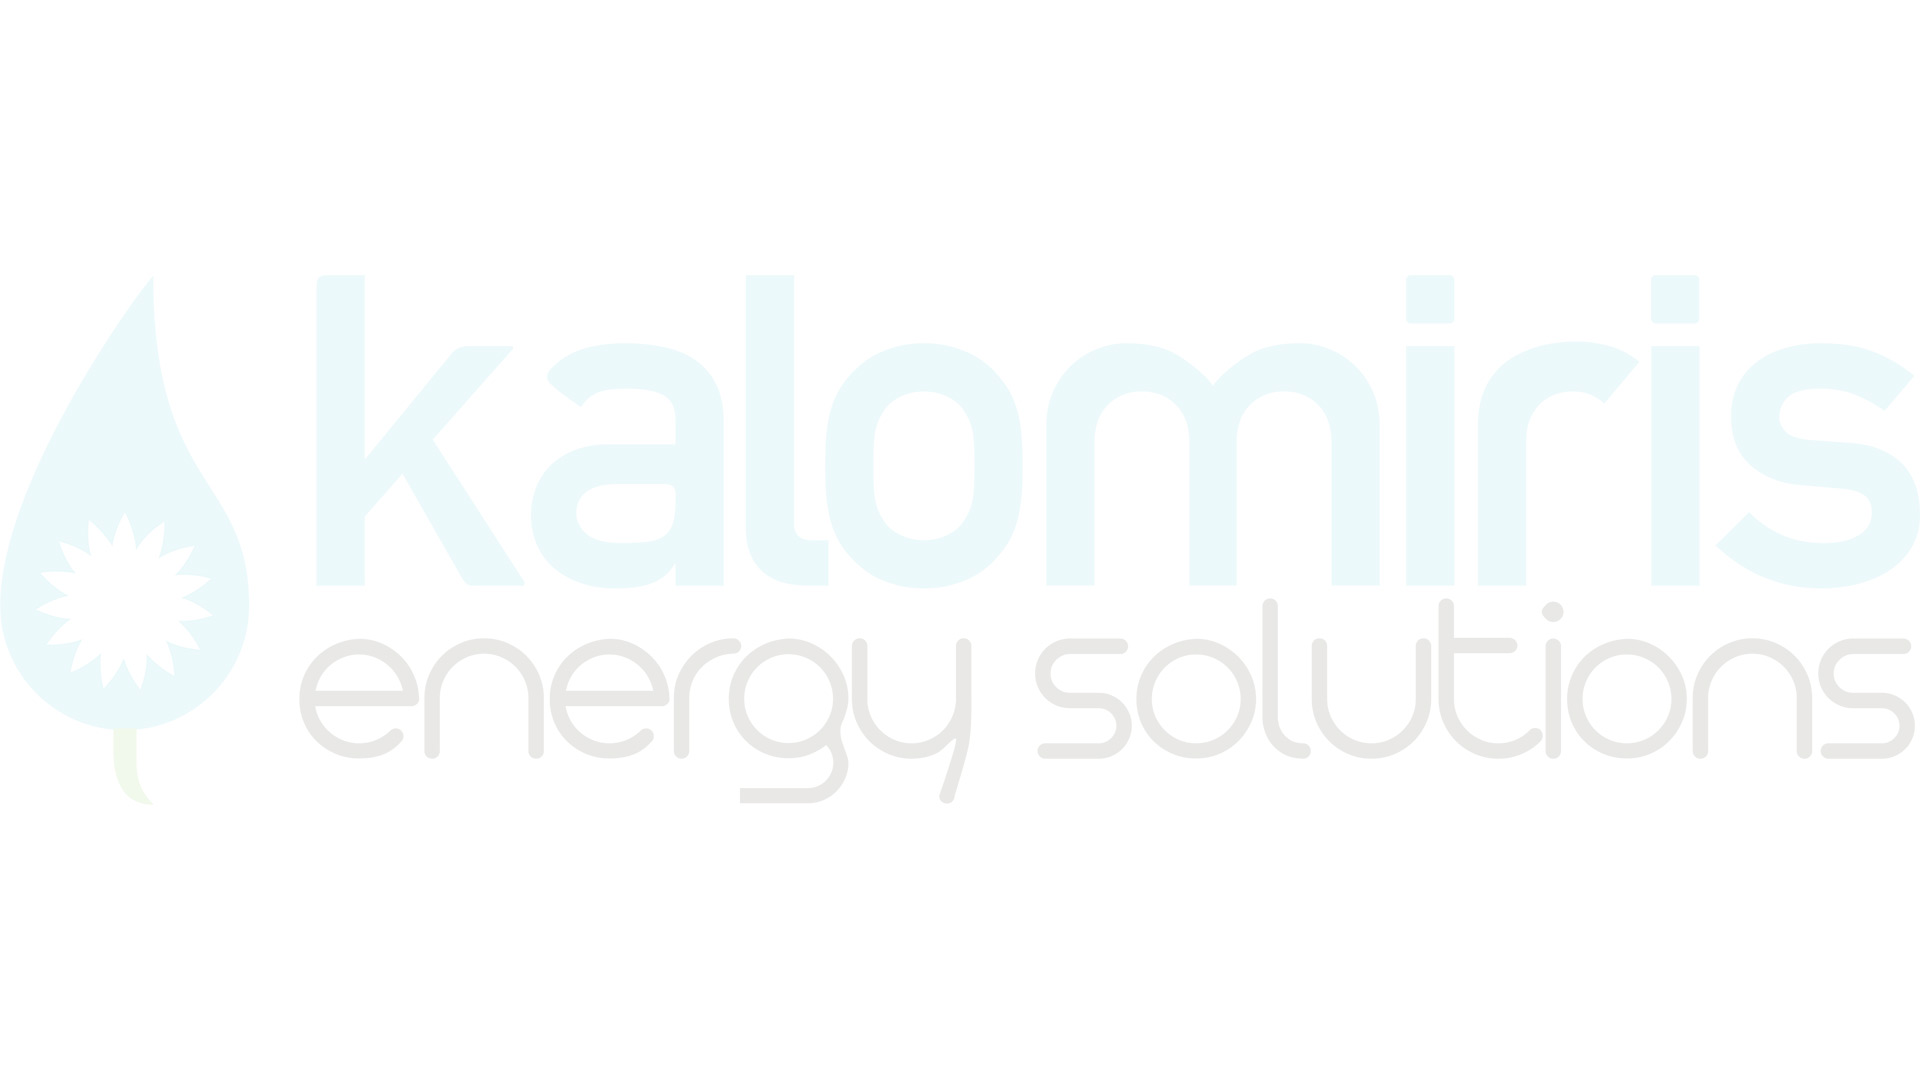 Ceiling Fan CASAFAN ECO AVIATOS 132 WE-WE 52 (132cm)